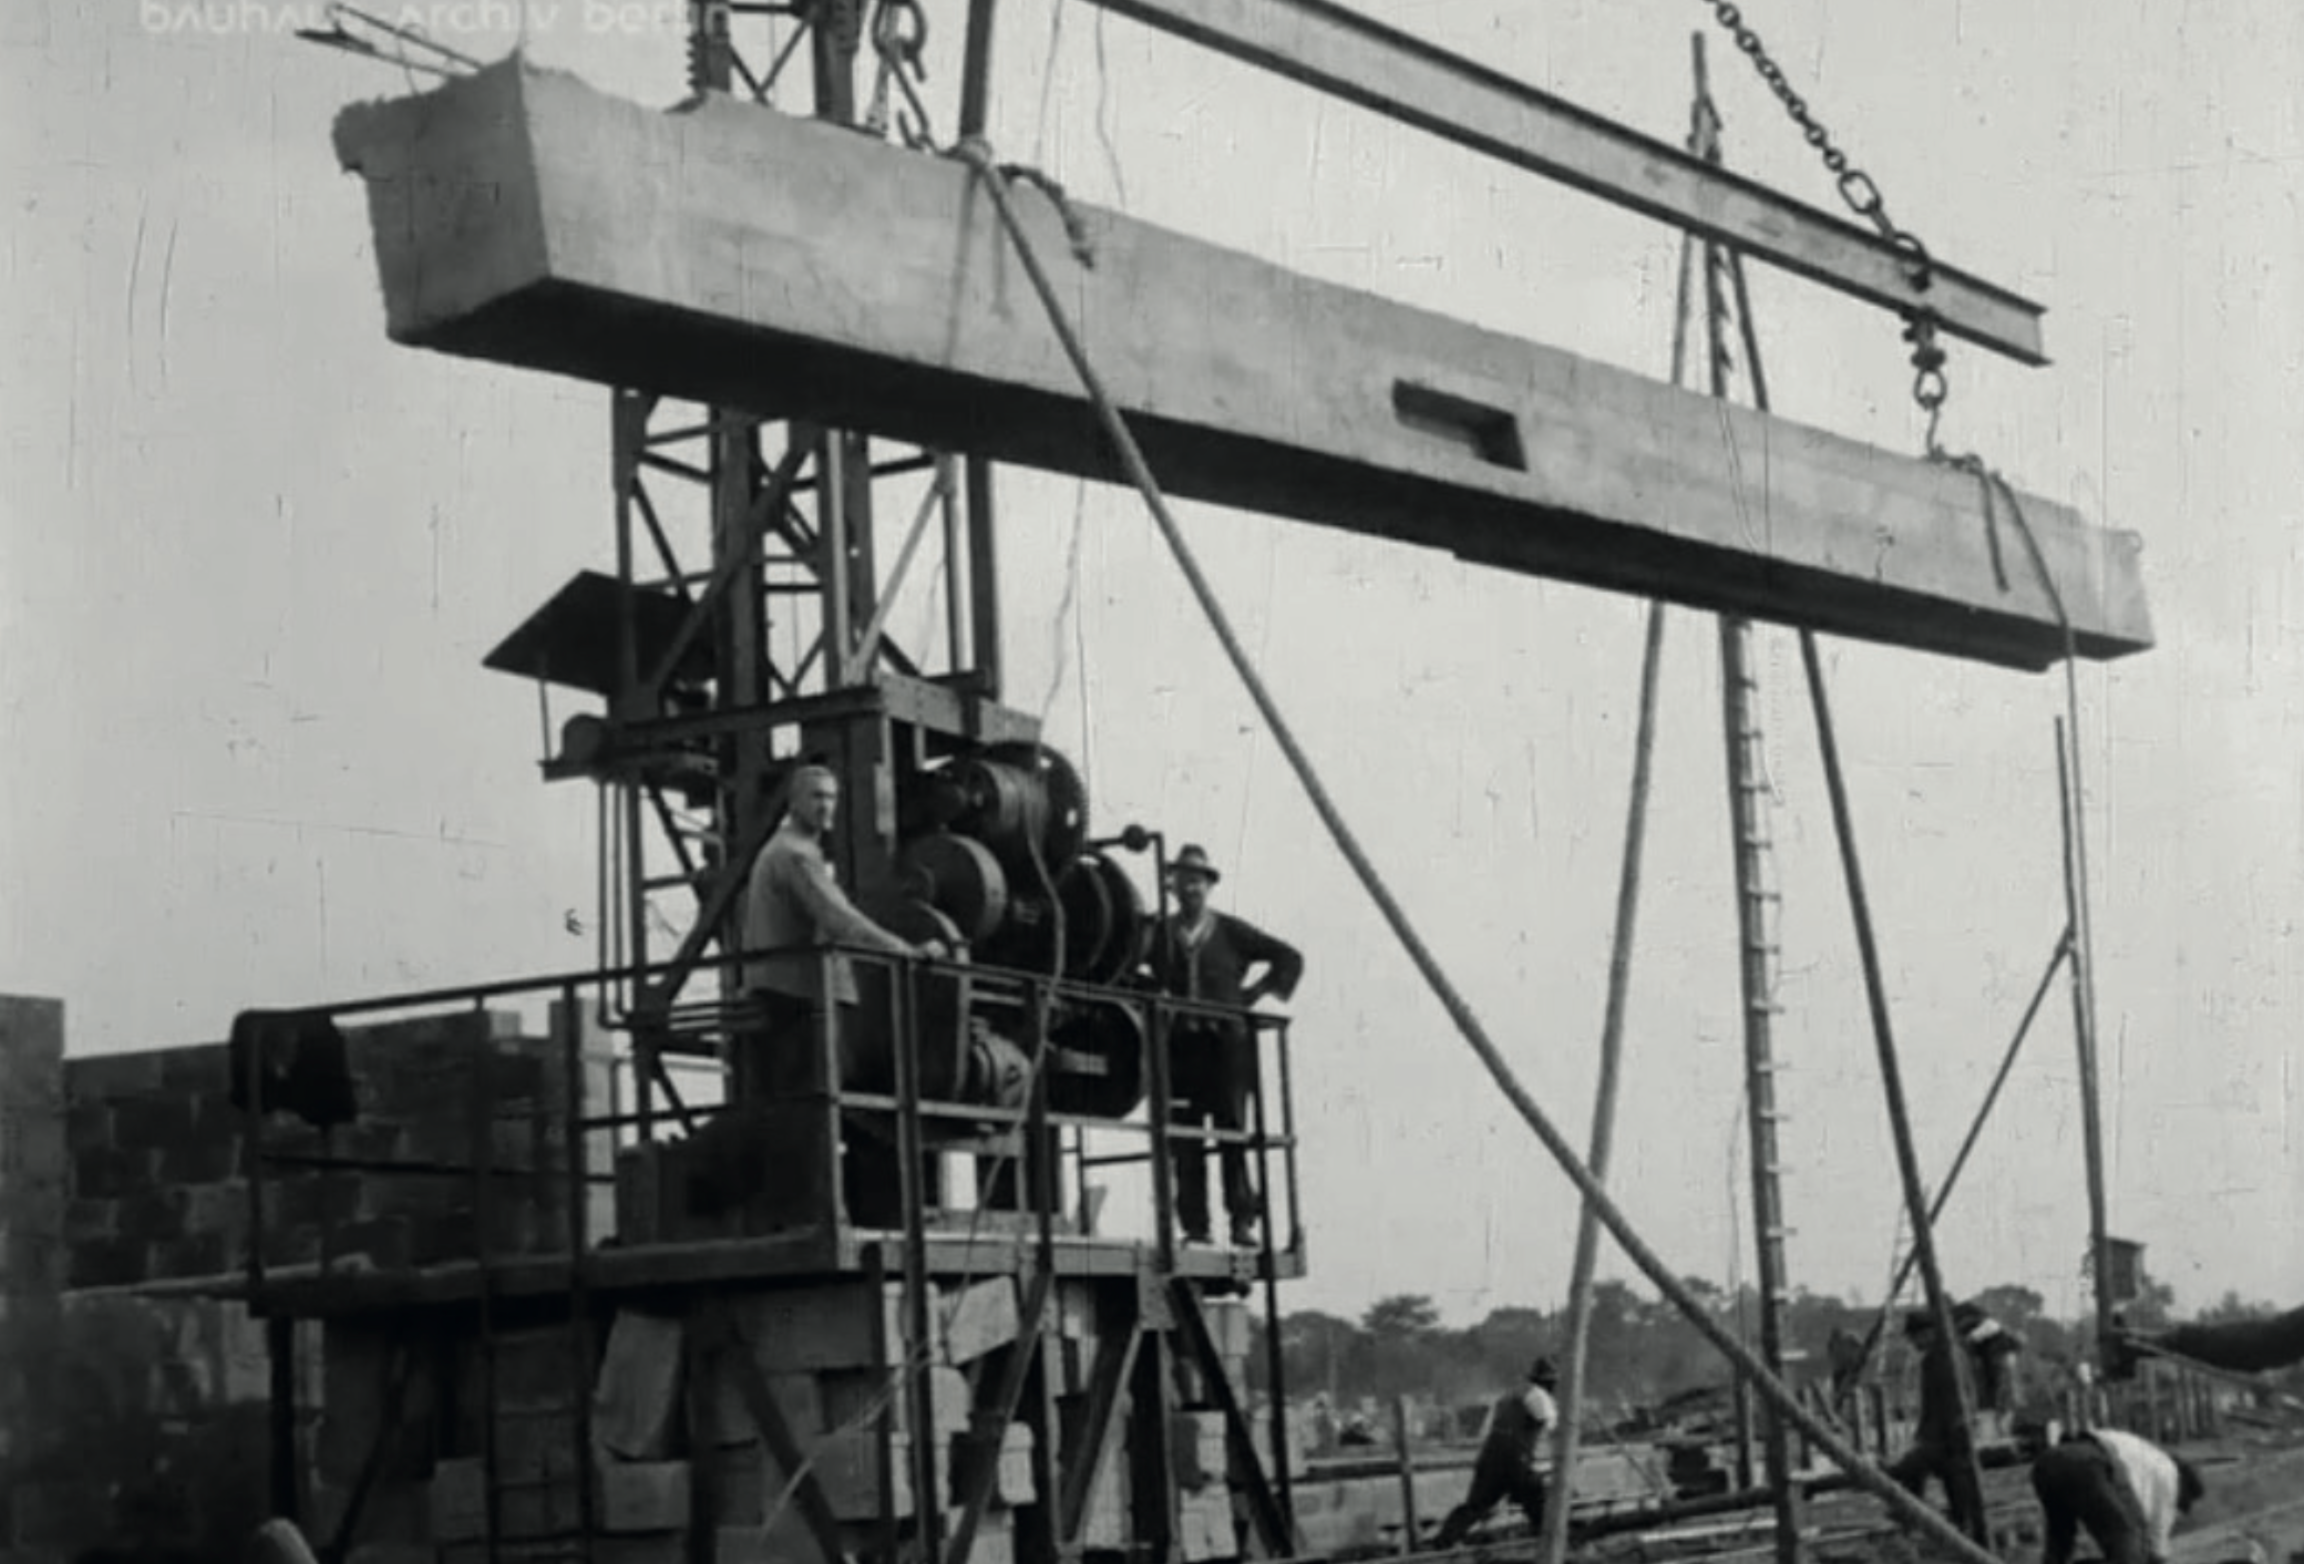 The rammed beams are protected from rust. Image from: How to live healthily and economically? Film series in four episodes by Walter Gropius and the Humboldt film GMBH, 1926.